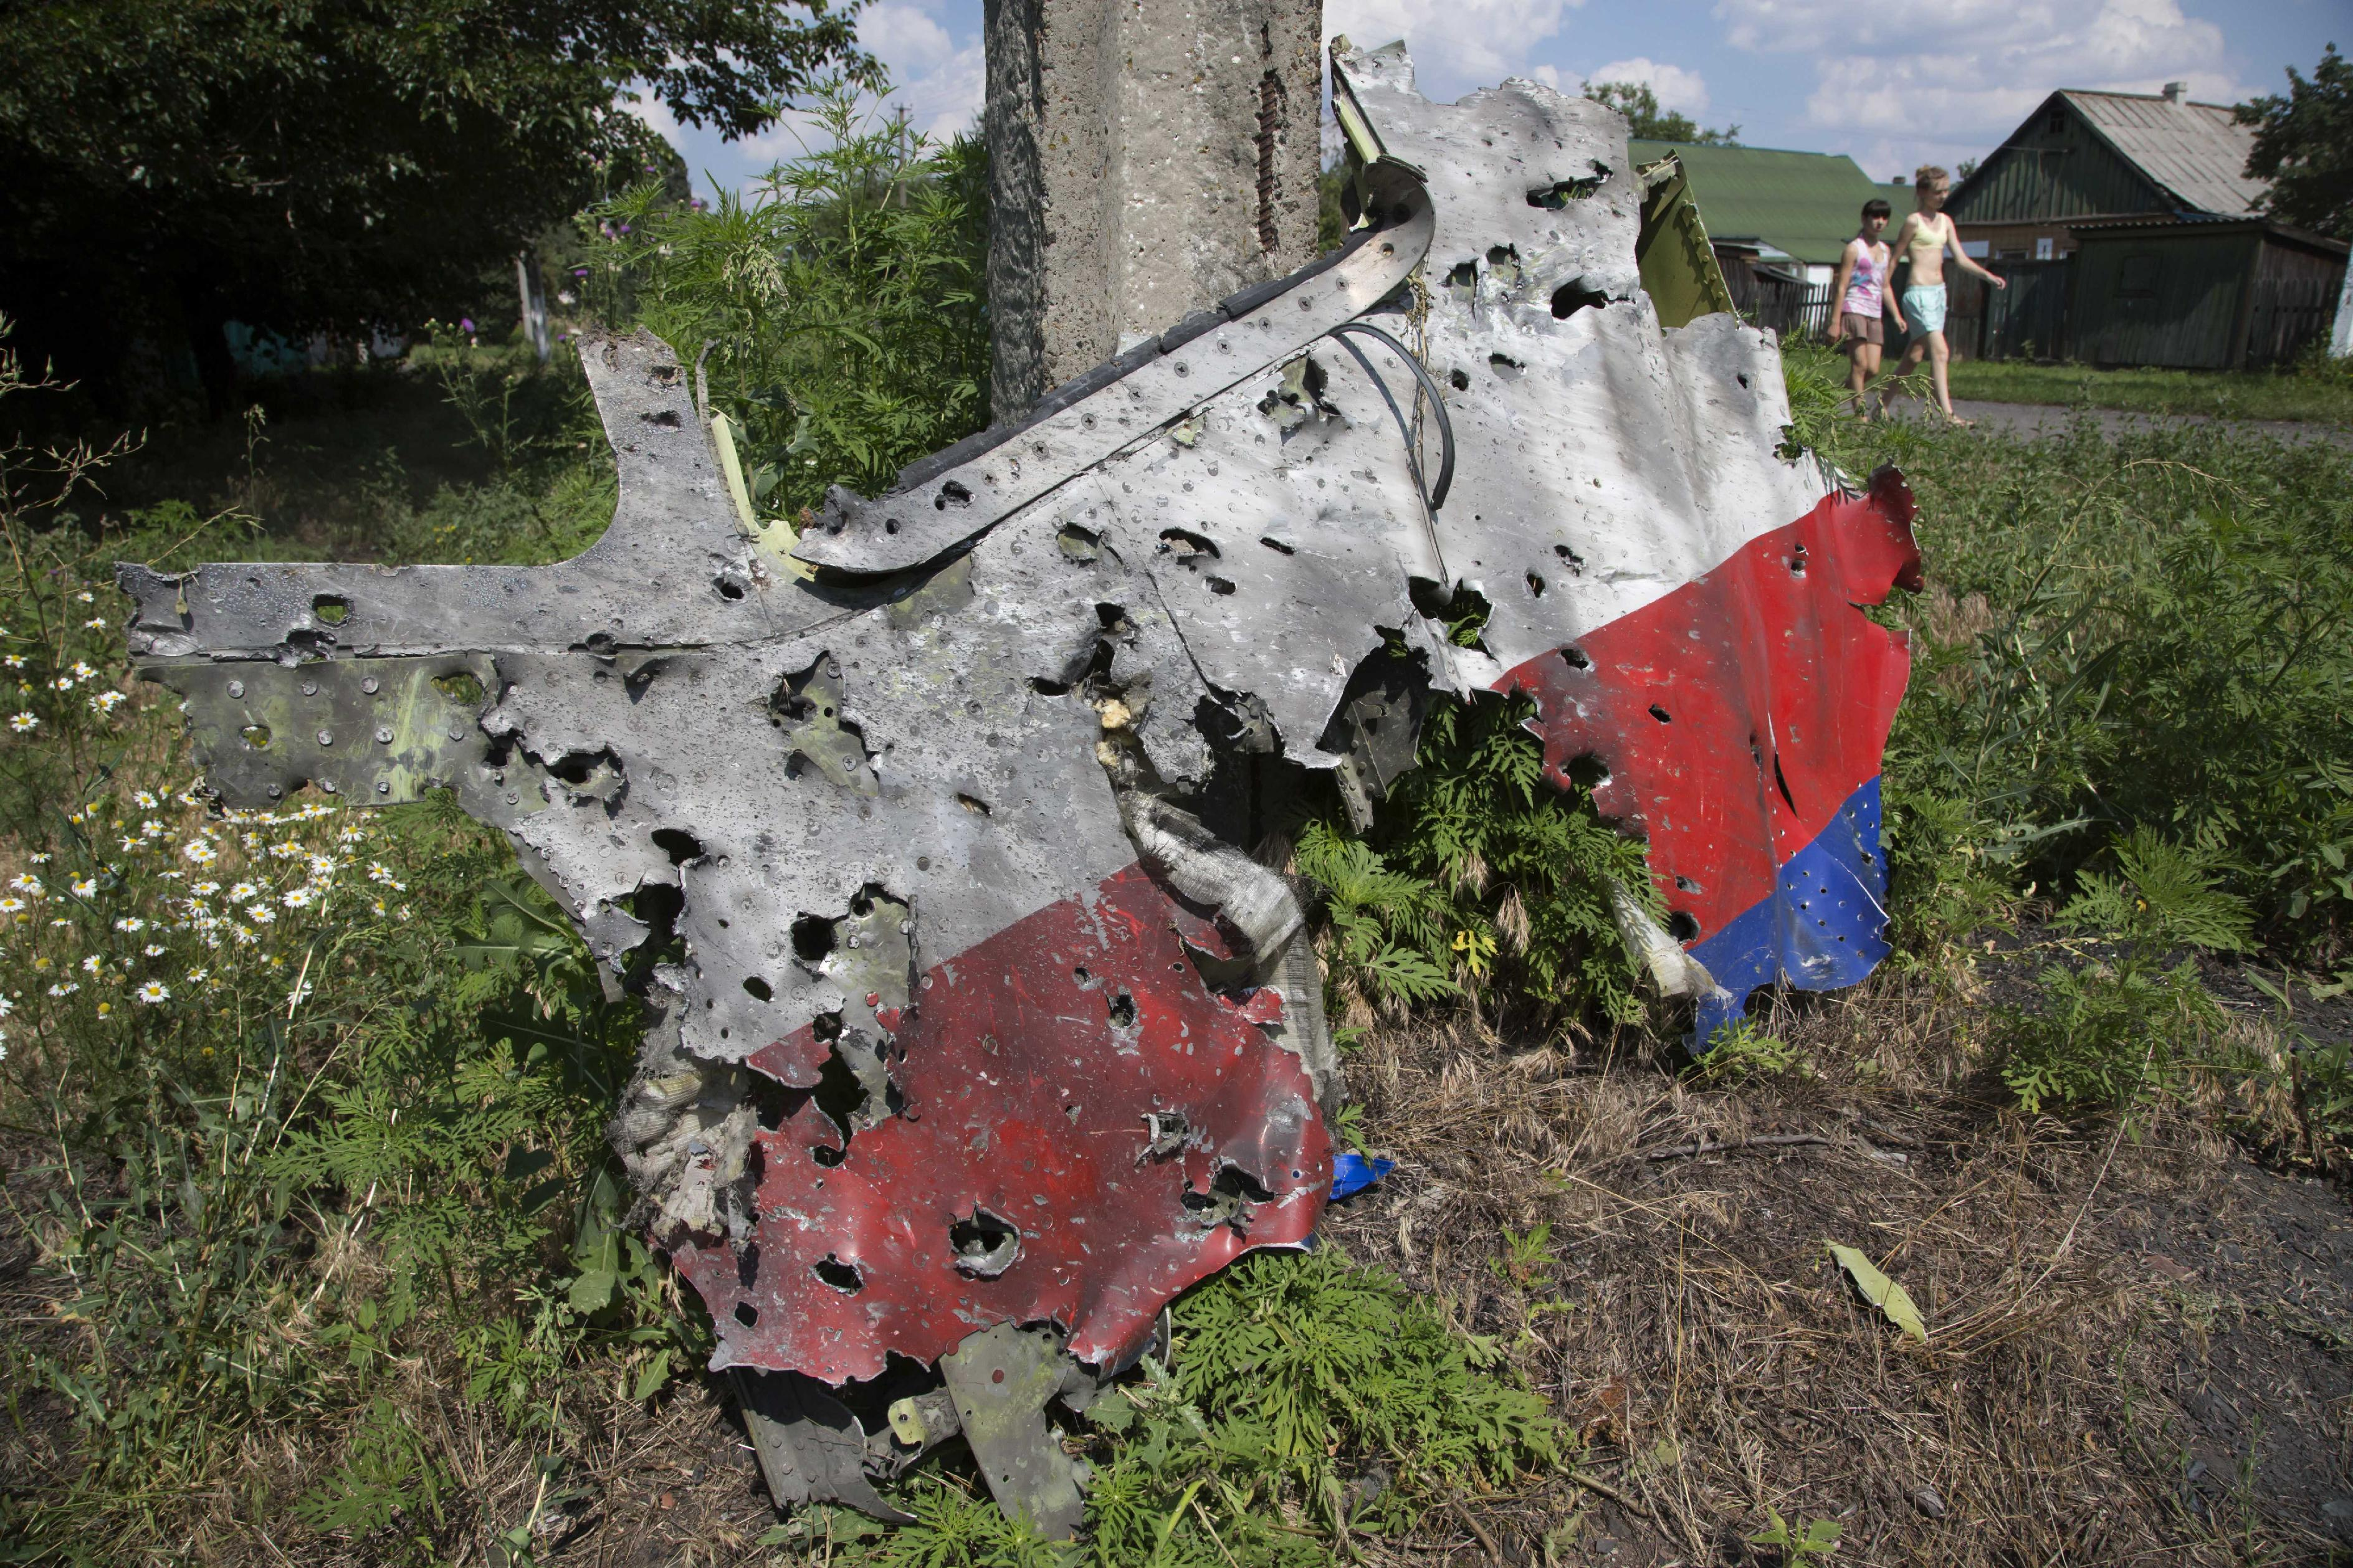 Ukraine rebel leader: Separatists had BUK missiles